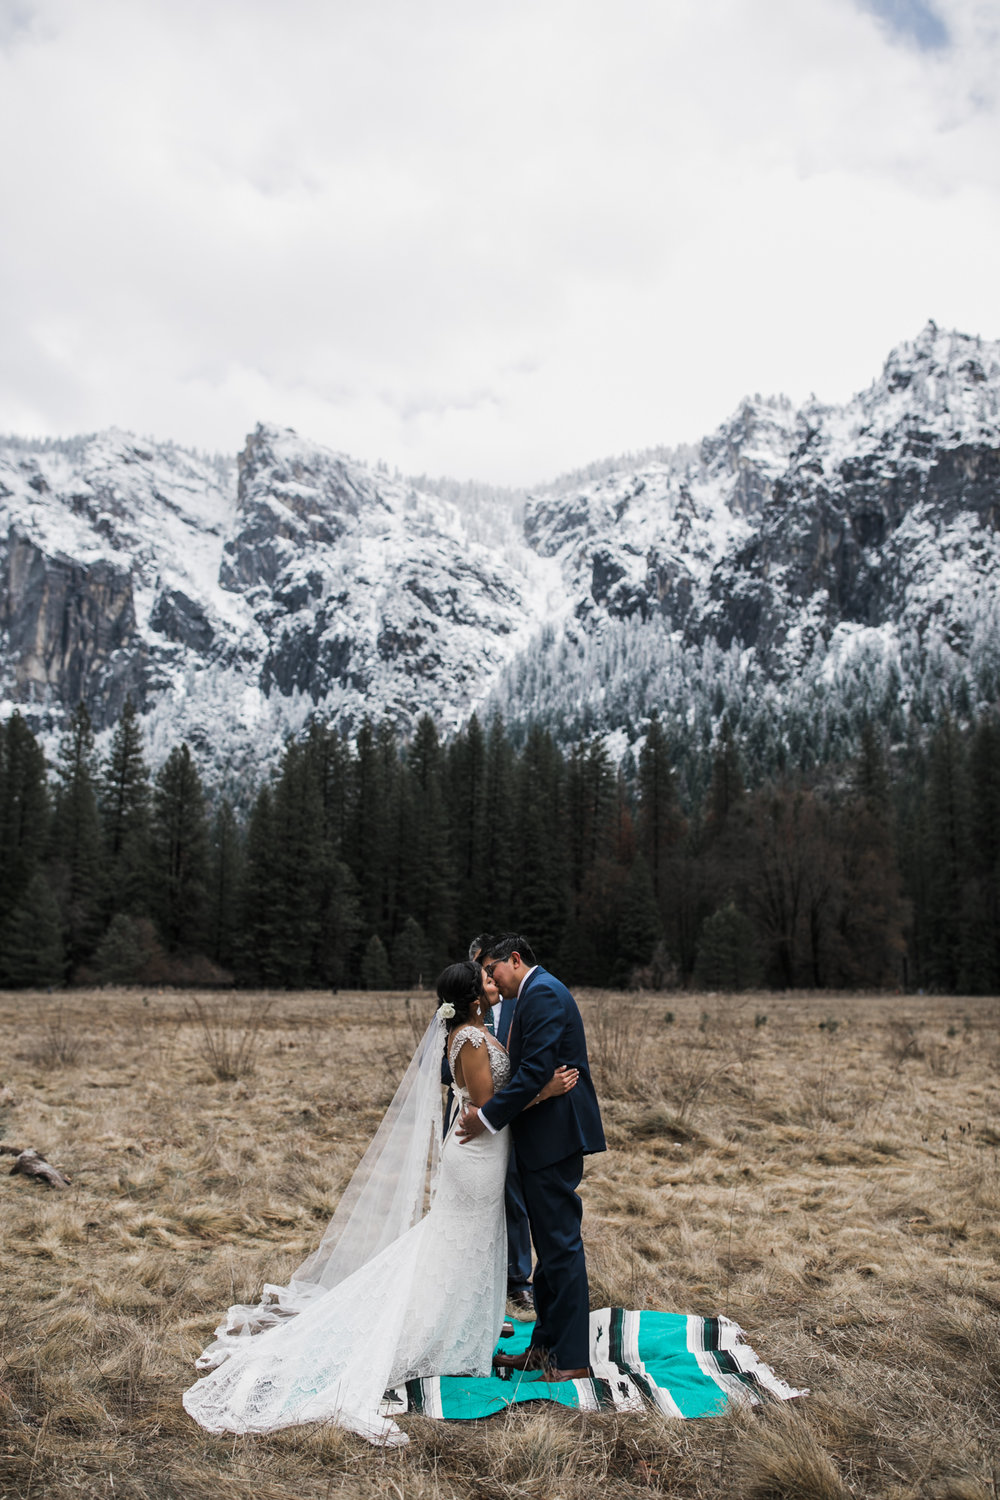 yosemite national park elopement inspiration | adventurous destination wedding photographer